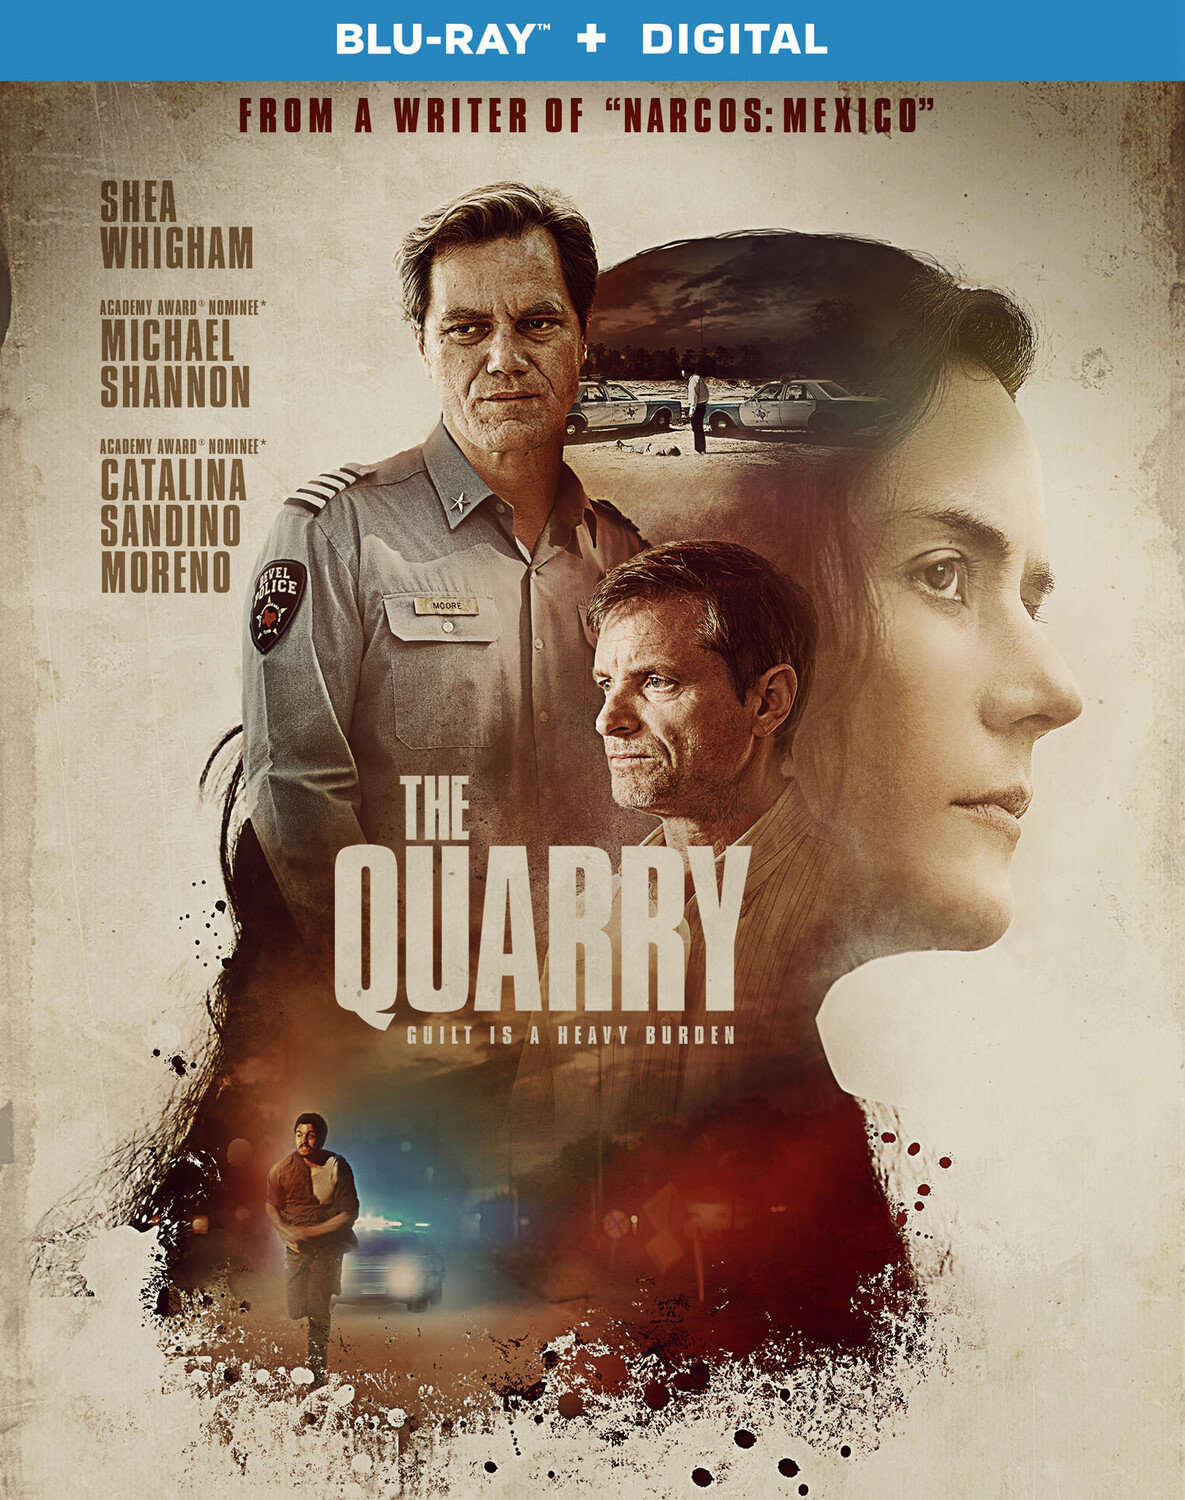 The Quarry (2020) poster image